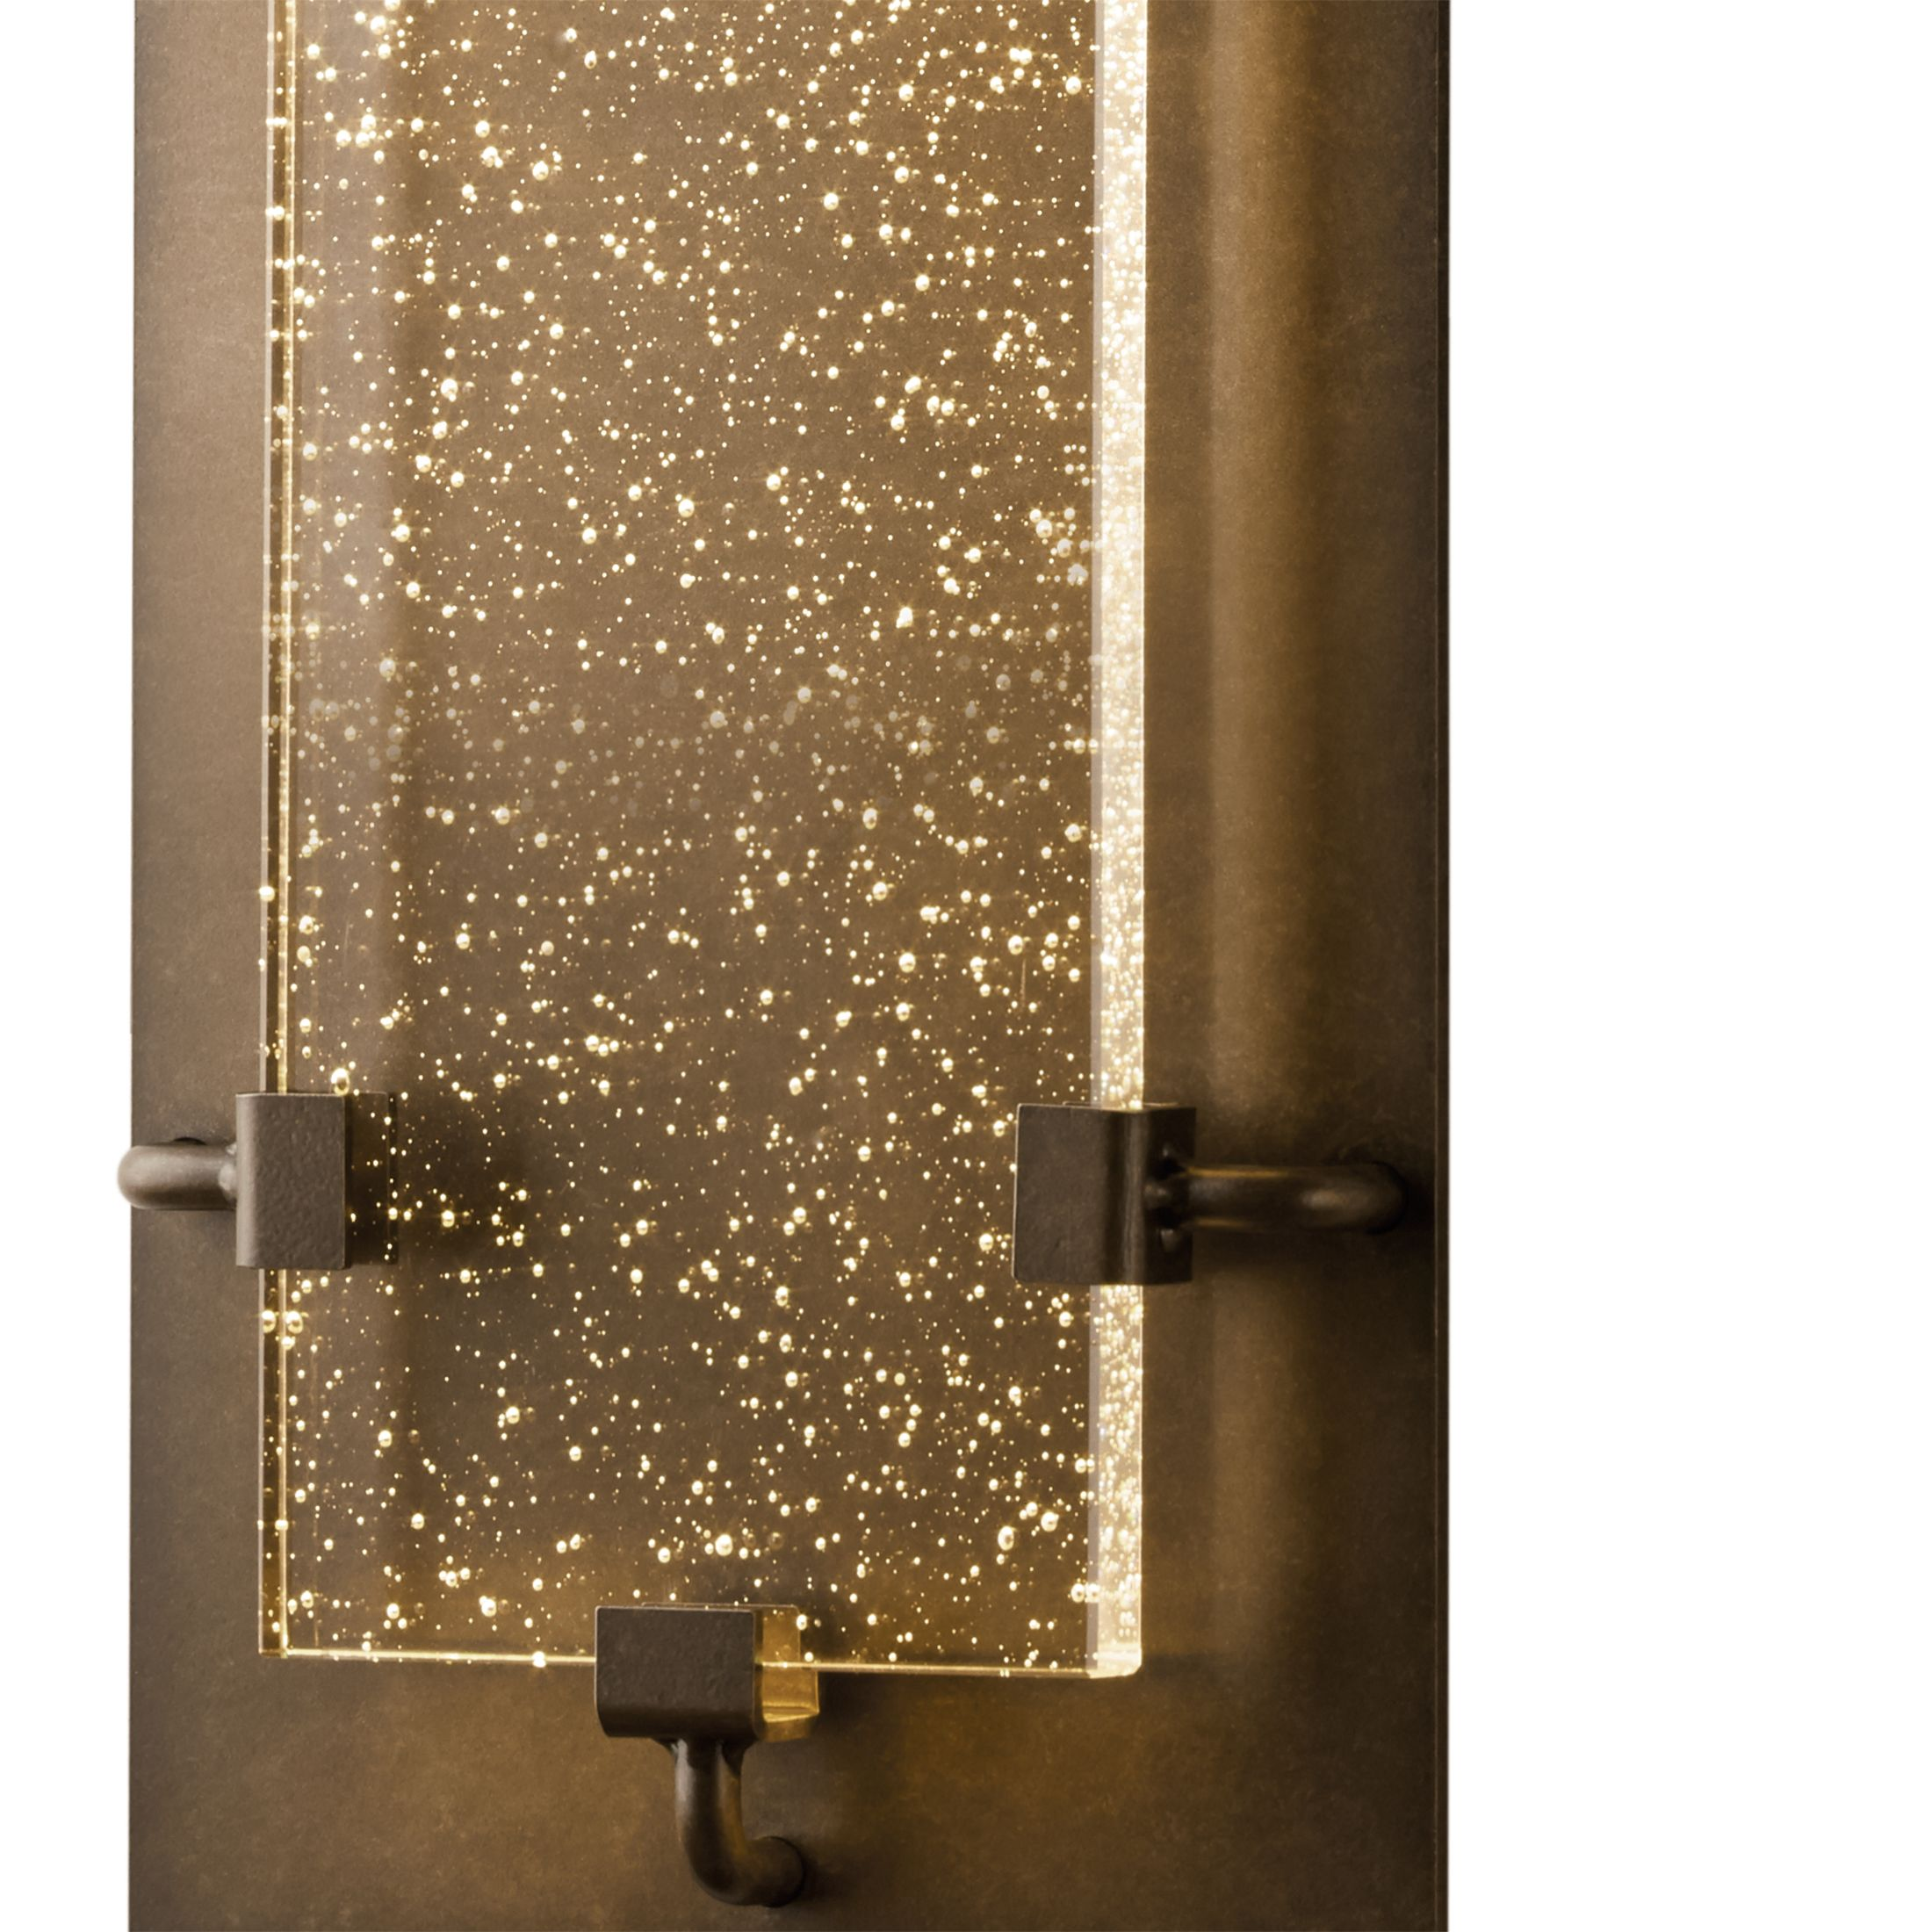 sconce att light twilight photo exterior sconces forms full wall awesome size outdoor x modern design of